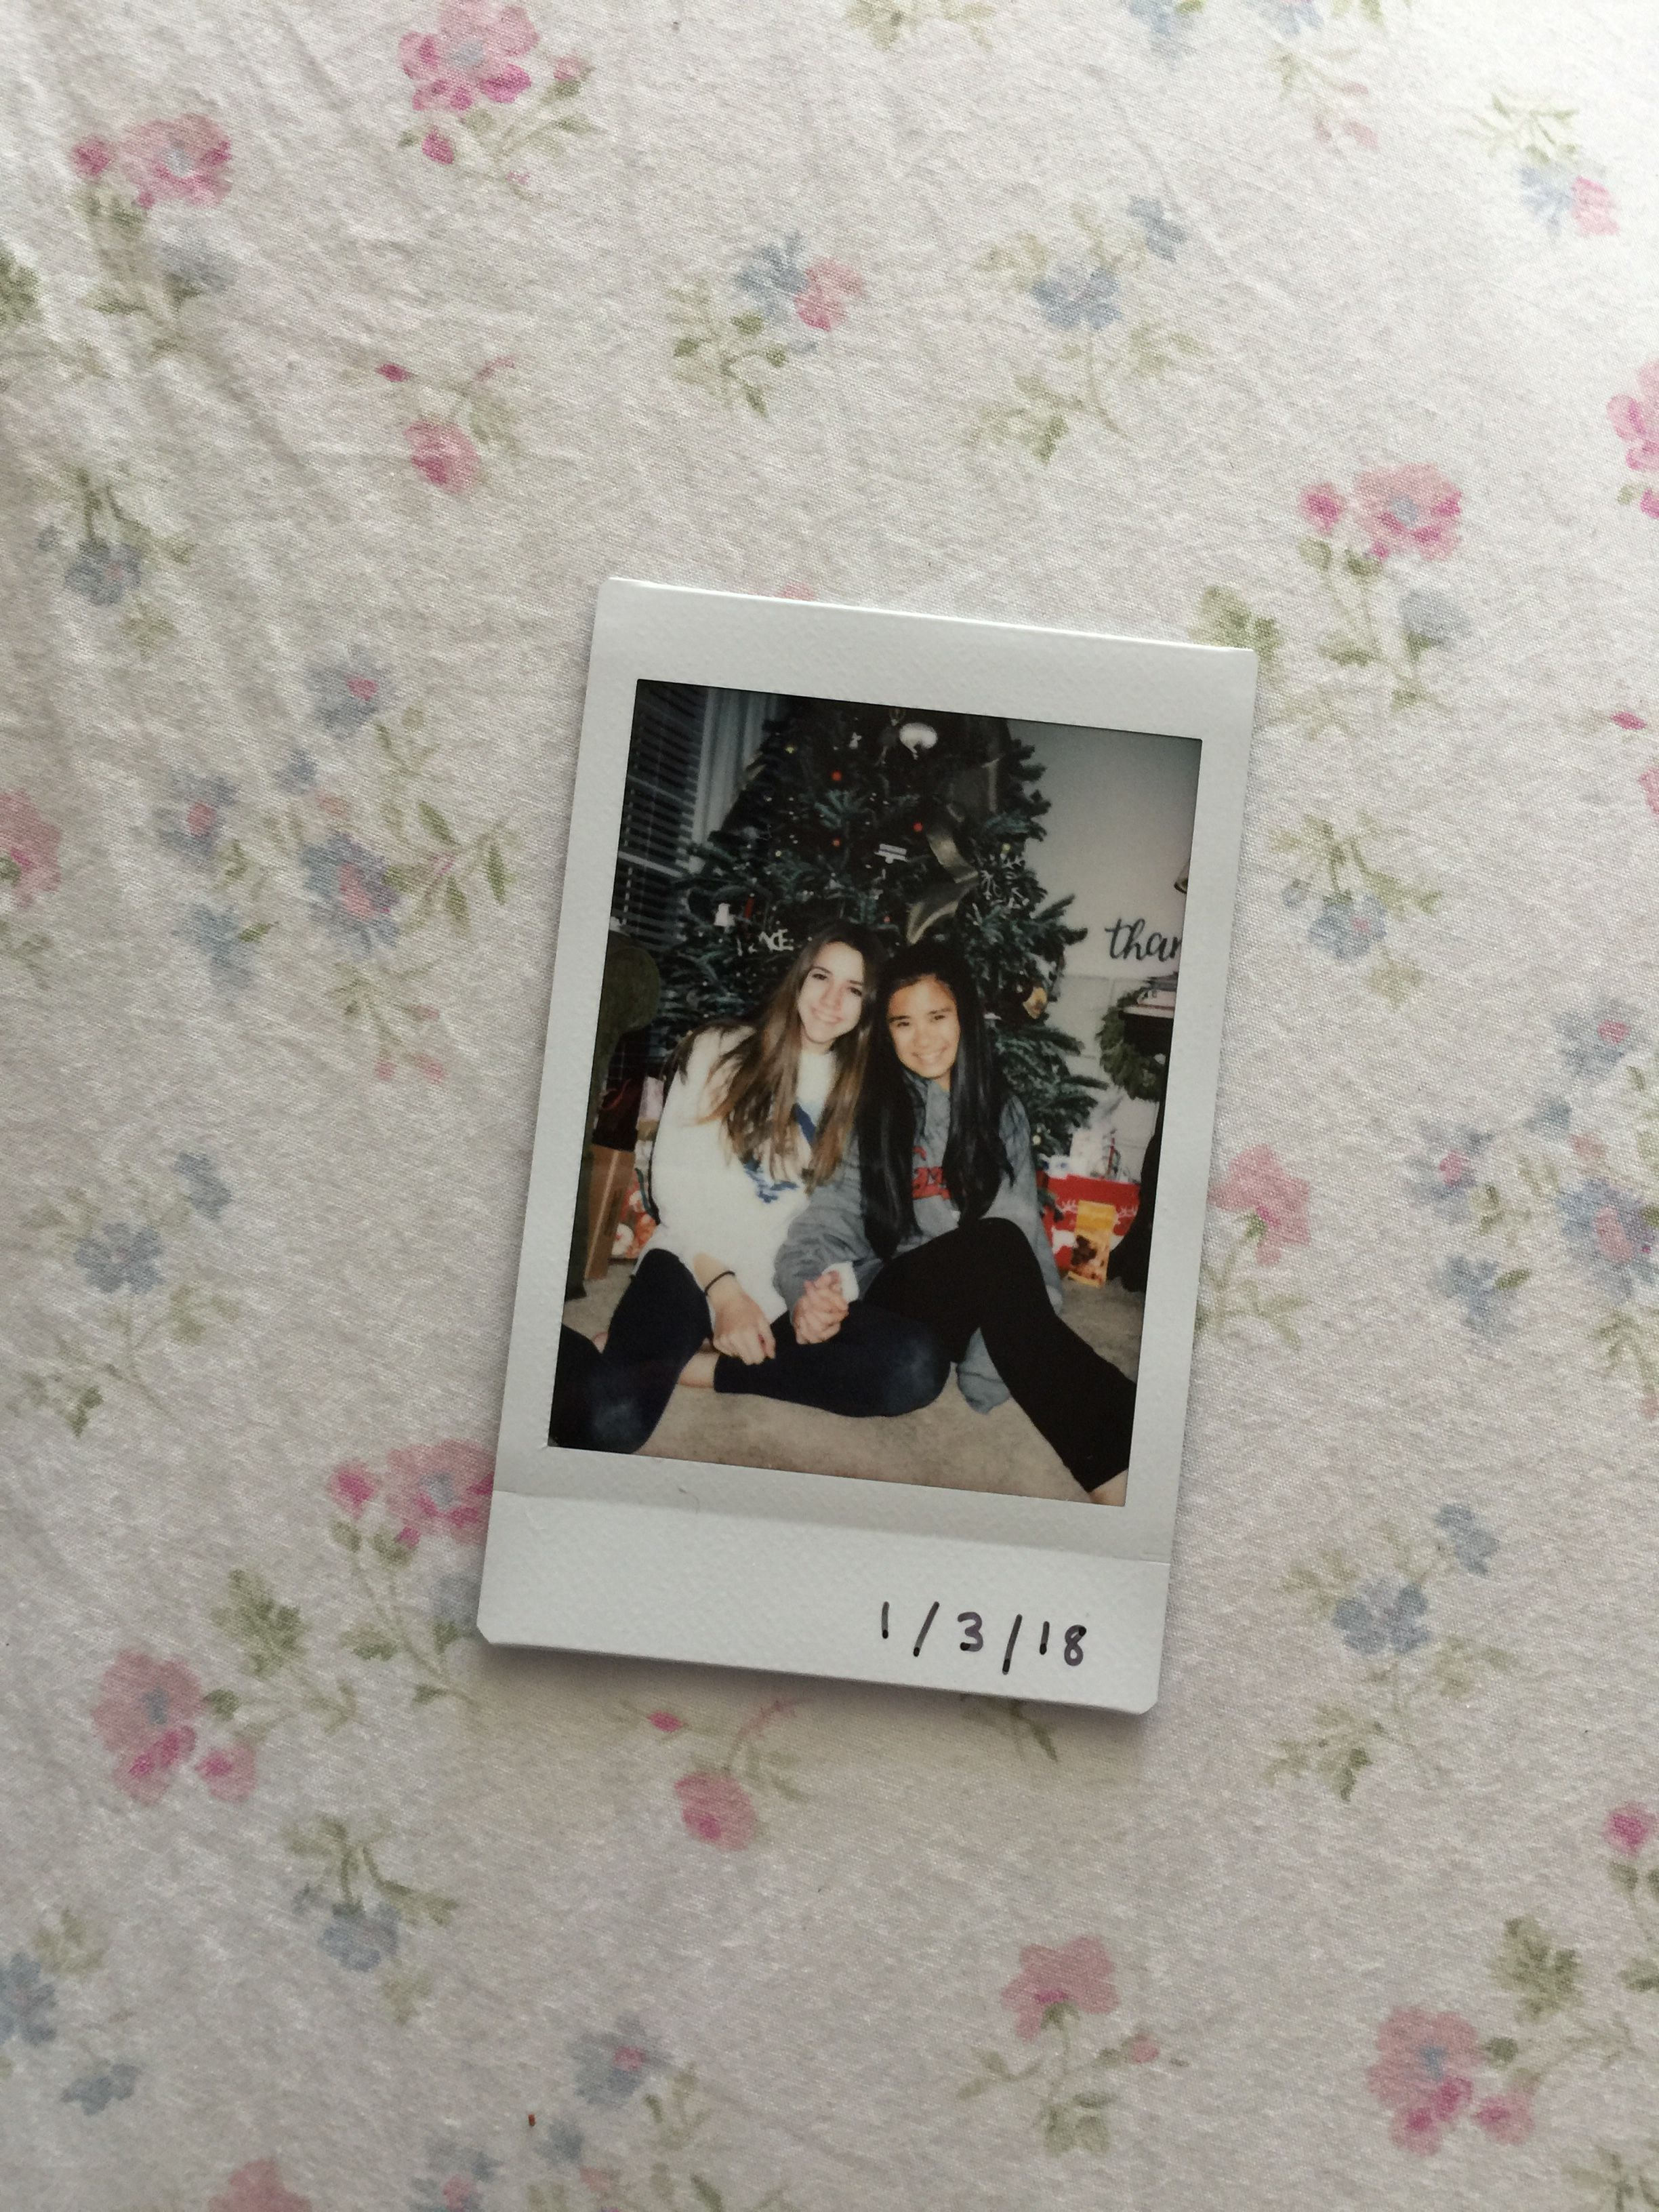 Polaroid Christmas Best Friends Christmas Pictures Friends Christmas Instagram Pictures Polaroid Pictures